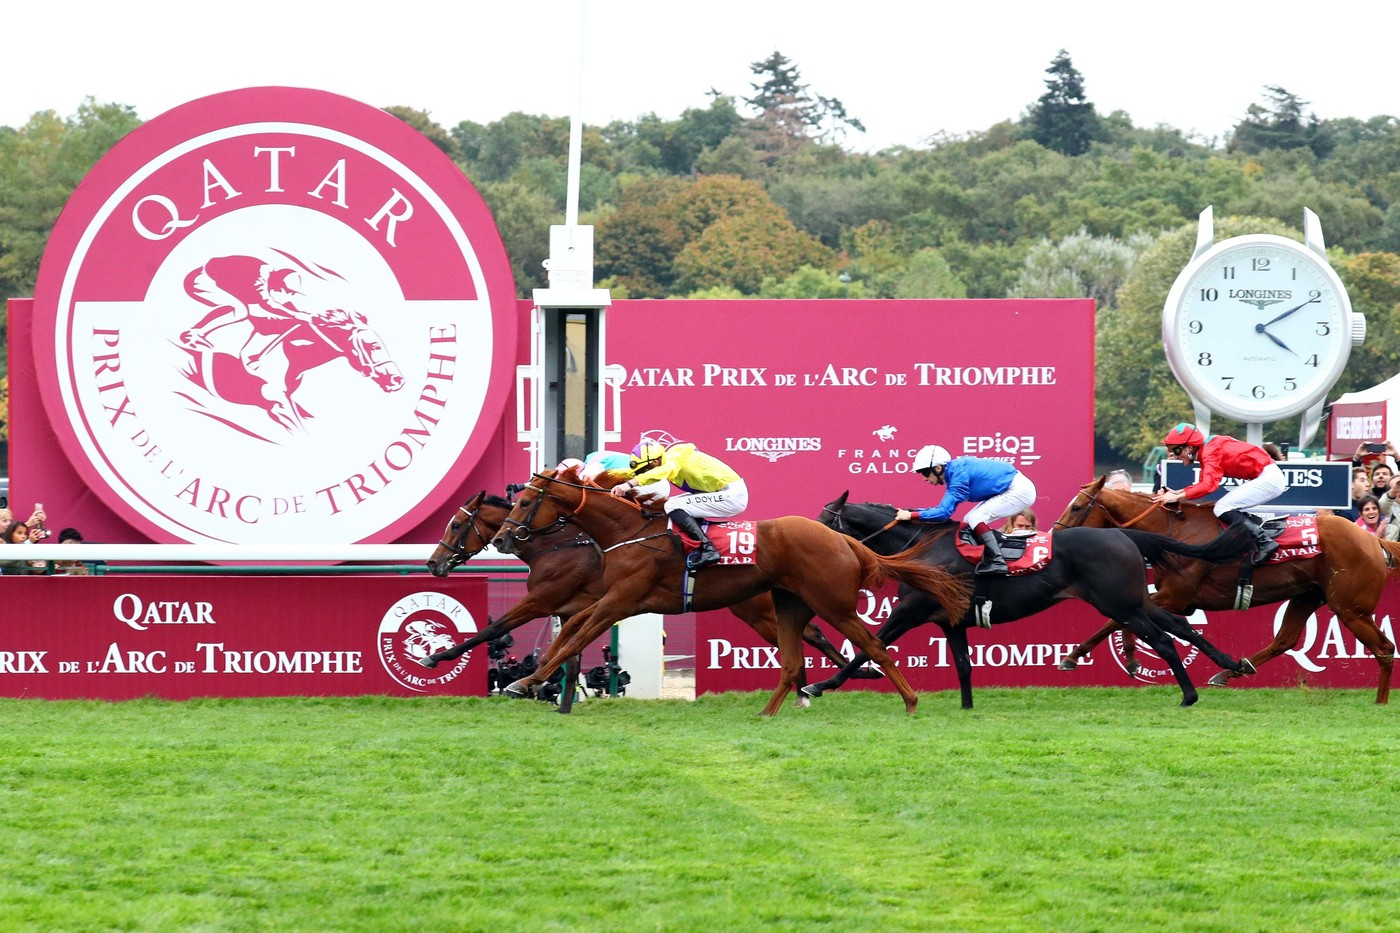 Longines Flat Racing Event: Longines times the Qatar Prix de l'Arc de Triomphe  back at ParisLongchamp 2